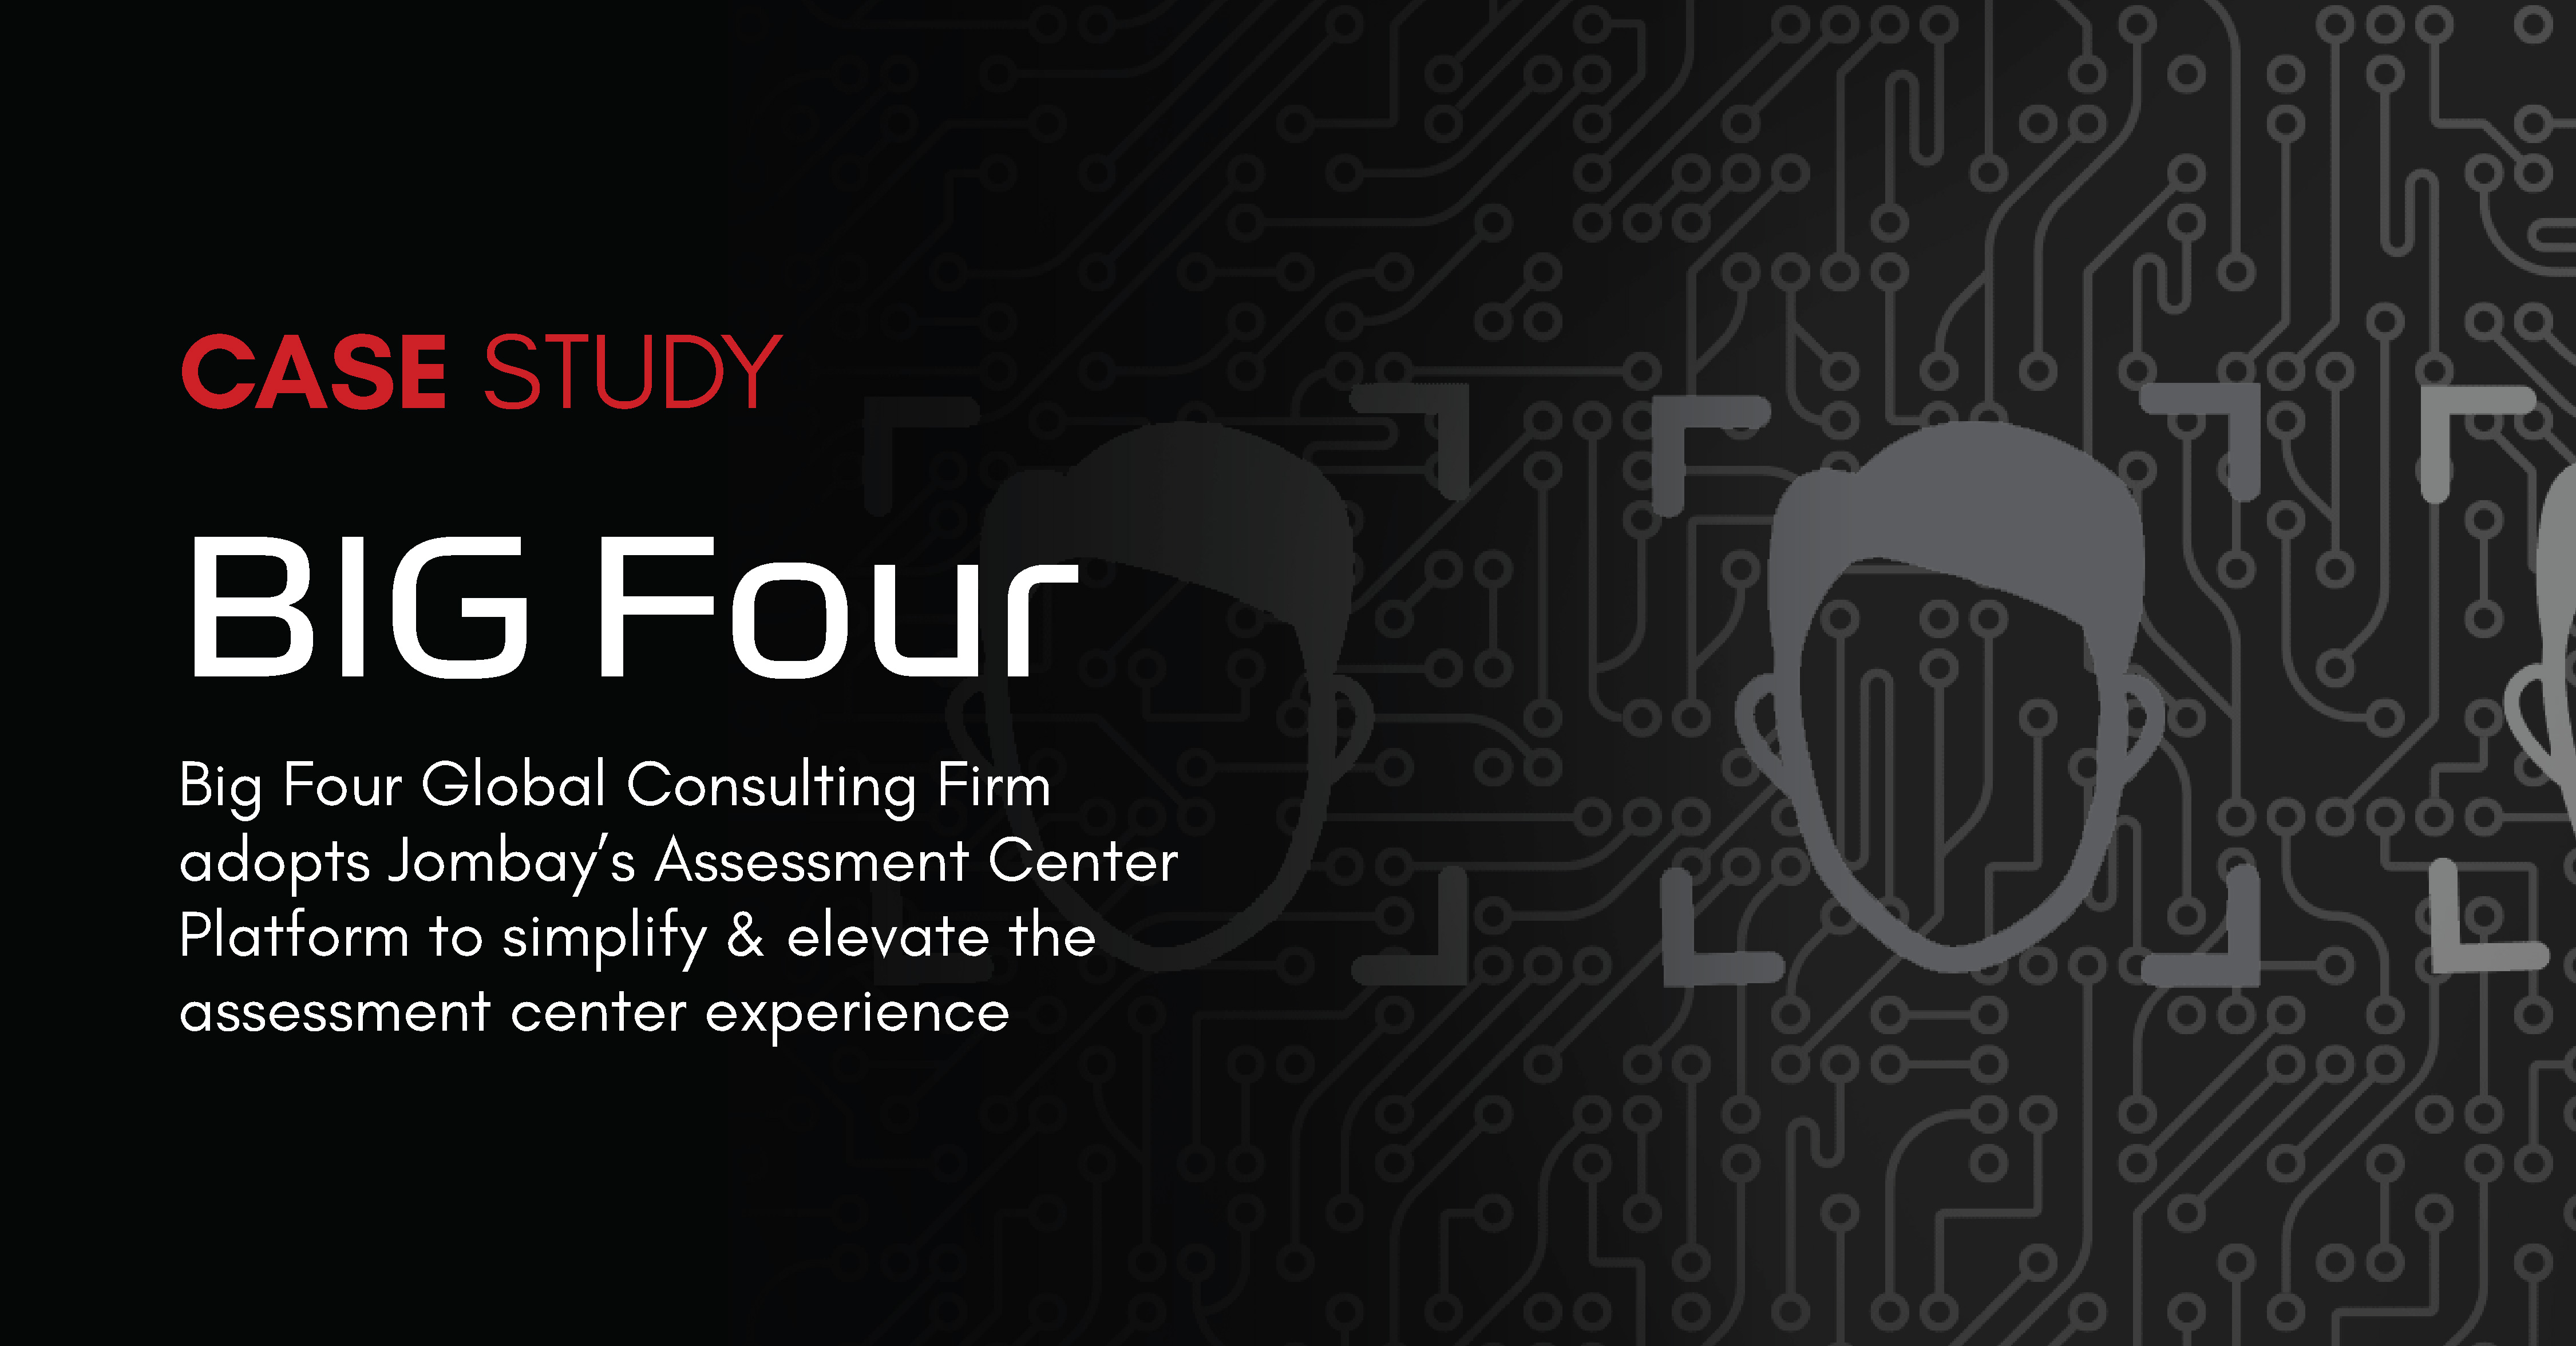 Success Story: One of the Big Four Consulting Firms adopts Jombay's Assessment Center Platform